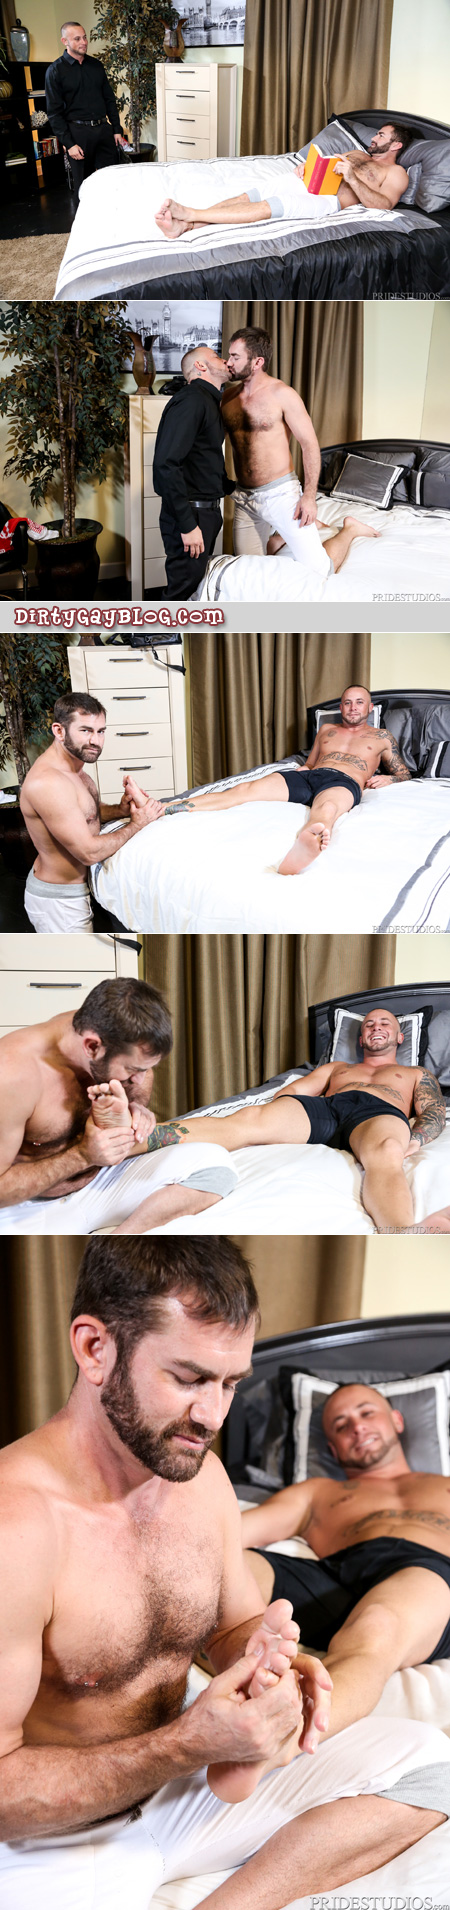 Bearded cub gives a businessman a foot massage.